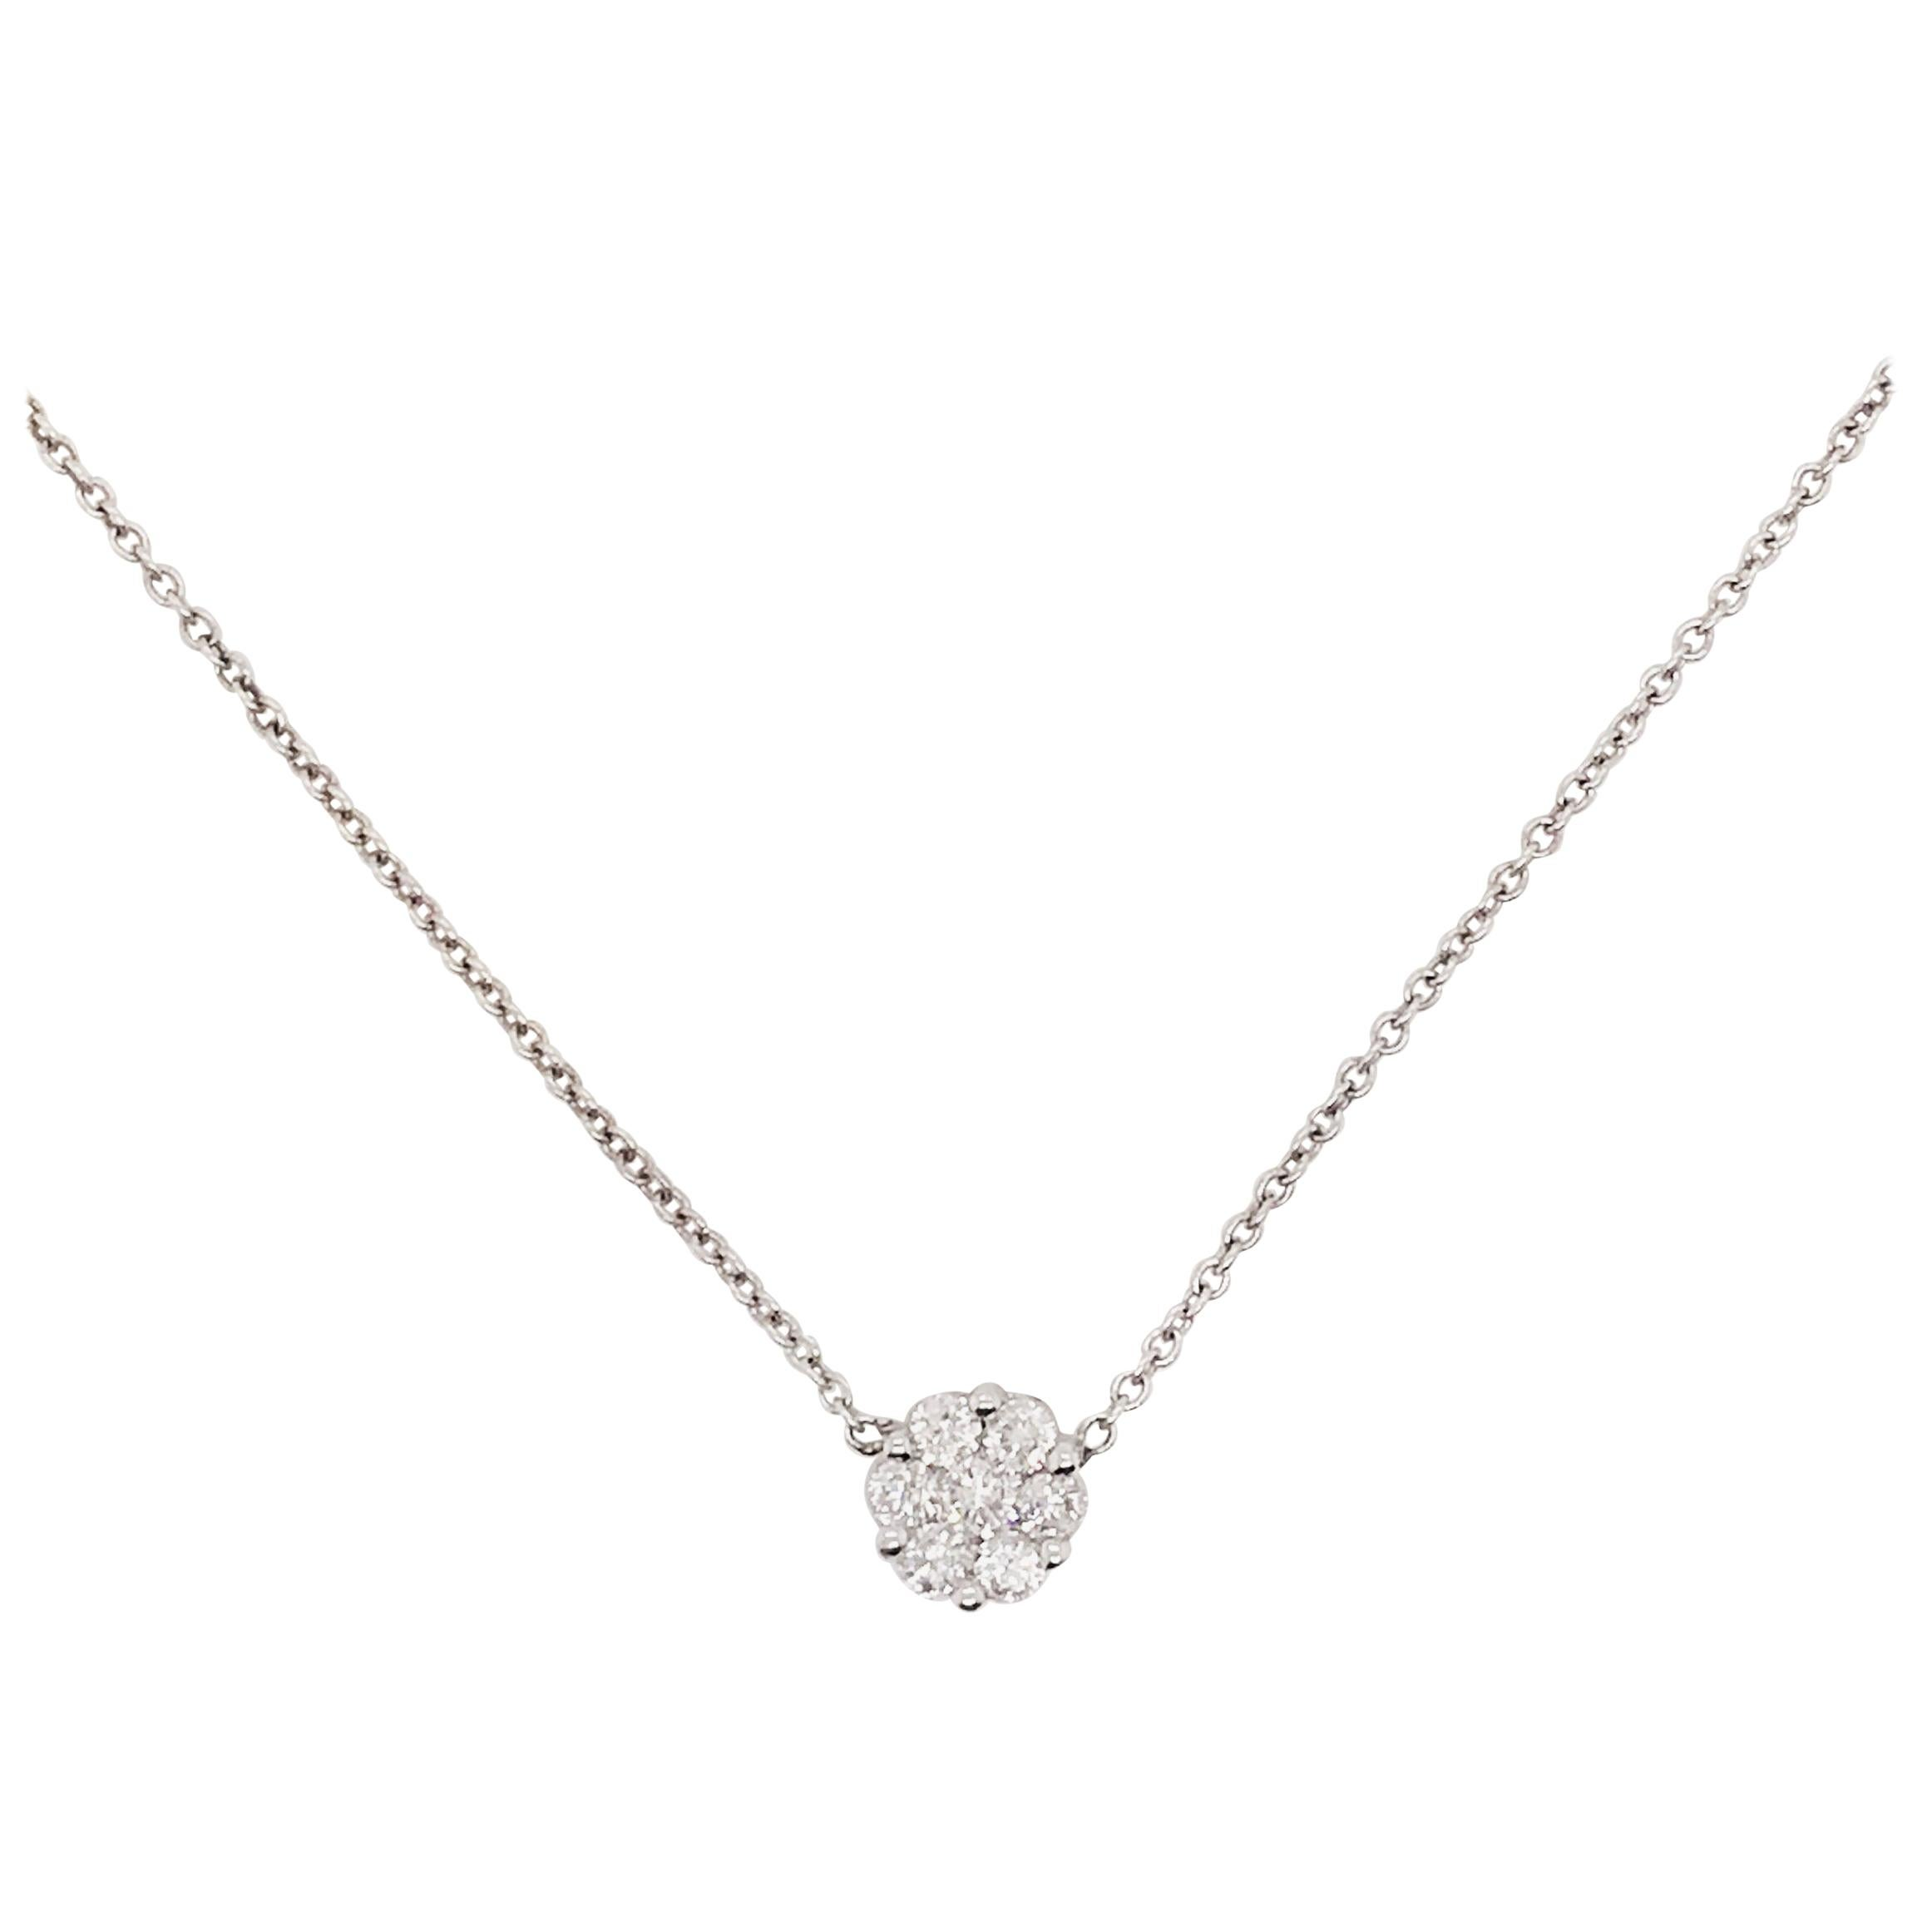 Diamond Cluster Pendant .25 Carat Total Weight with 7 Diamonds and 14kt Chain